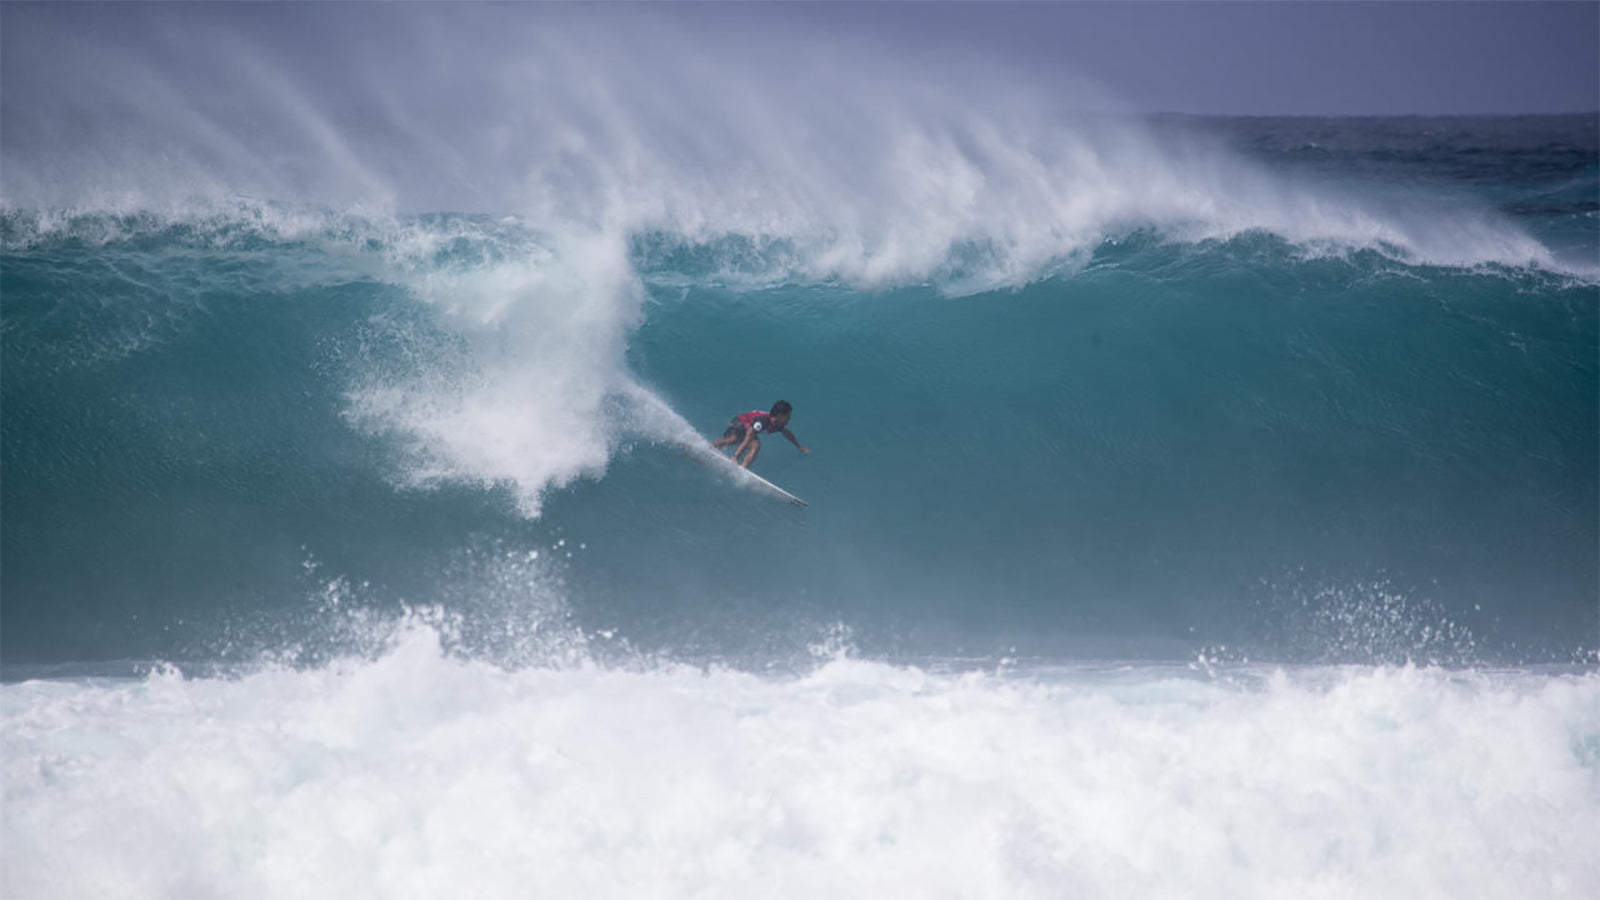 OAHU, UNITED STATES - FEBRUARY 2: Seth Moniz of Hawaii will surf in the semi finals of the 2020 Volcom Pipe Pro after placing first in quarter final heat 3 on February 2, 2020 at Pipeline in Oahu, Hawaii, United States. (Photo by Tony Heff/WSL via Getty IOAHU, UNITED STATES - FEBRUARY 2: Seth Moniz of Hawaii will surf in the semi finals of the 2020 Volcom Pipe Pro after placing first in quarter final heat 3 on February 2, 2020 at Pipeline in Oahu, Hawaii, United States. (Photo by Tony Heff/WSL via Getty